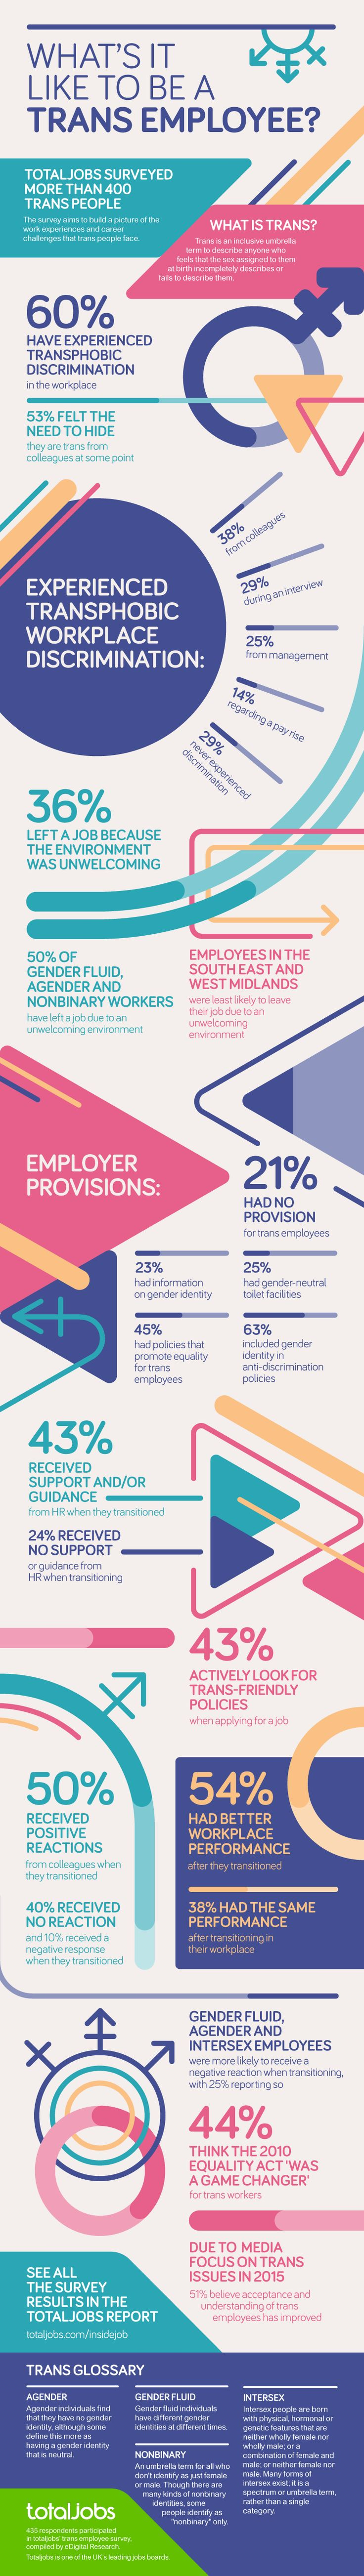 For International Transgender Day of Visibility, totaljobs surveyed trans workers from different industries across the UK. This survey was designed to gather information about the experiences of trans employees in the workplace.   The survey aims to build a picture of the HR provisions available for trans employees, the attitudes they encounter in the workplace, and their thoughts and feelings.